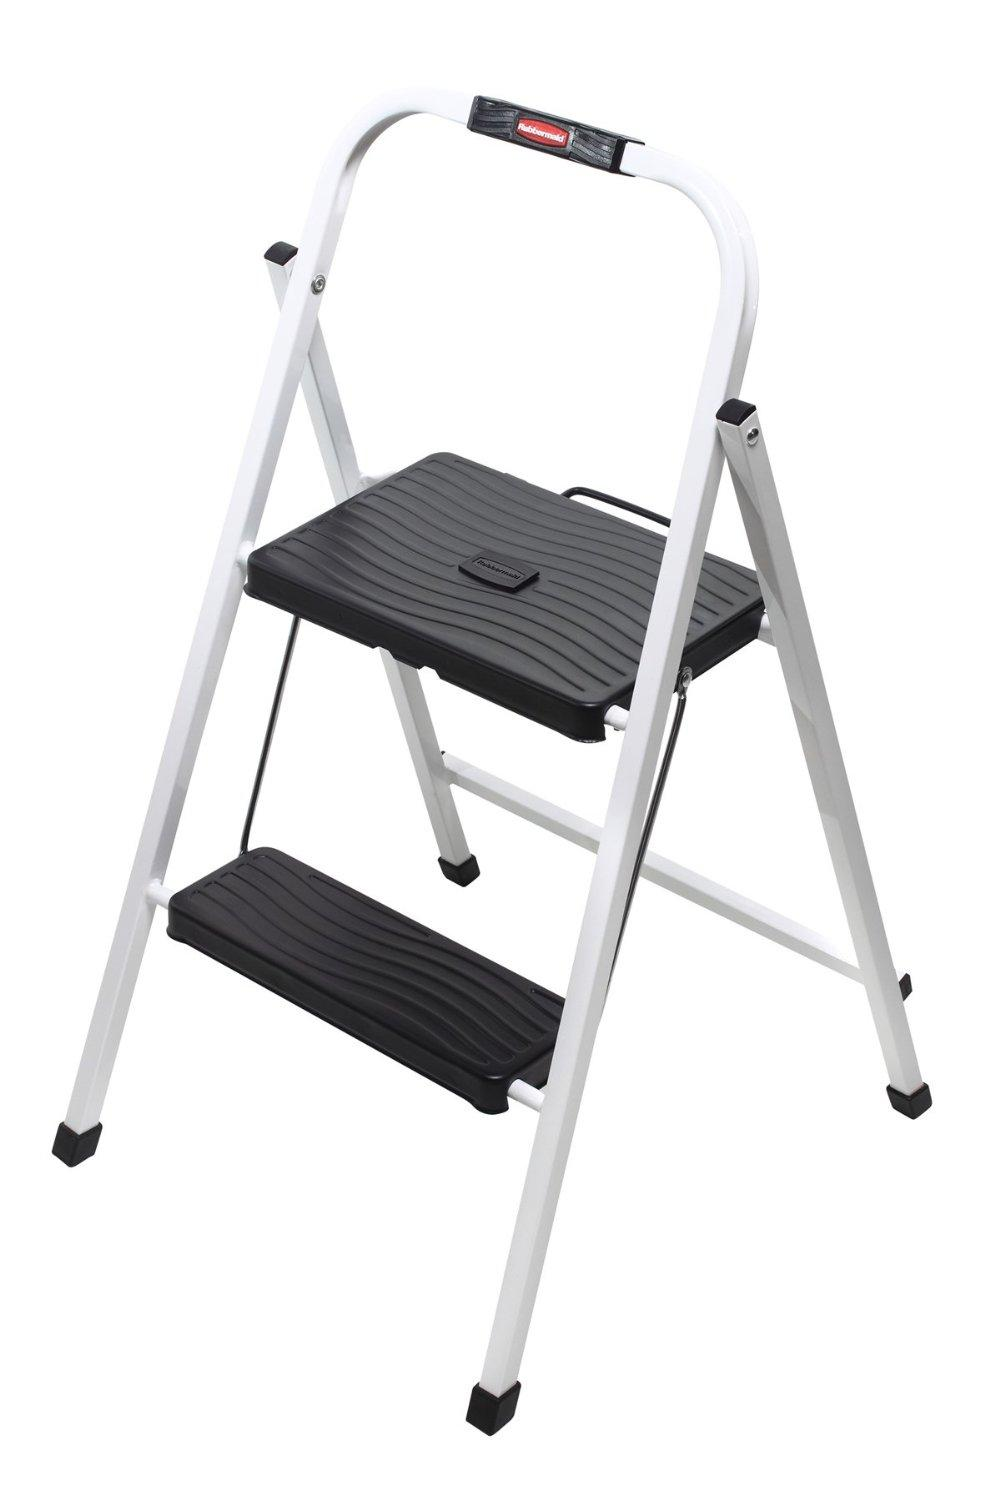 rubbermaid rm hsp2 folding 2 step lightweight steel step stool with hand grip 200. Black Bedroom Furniture Sets. Home Design Ideas